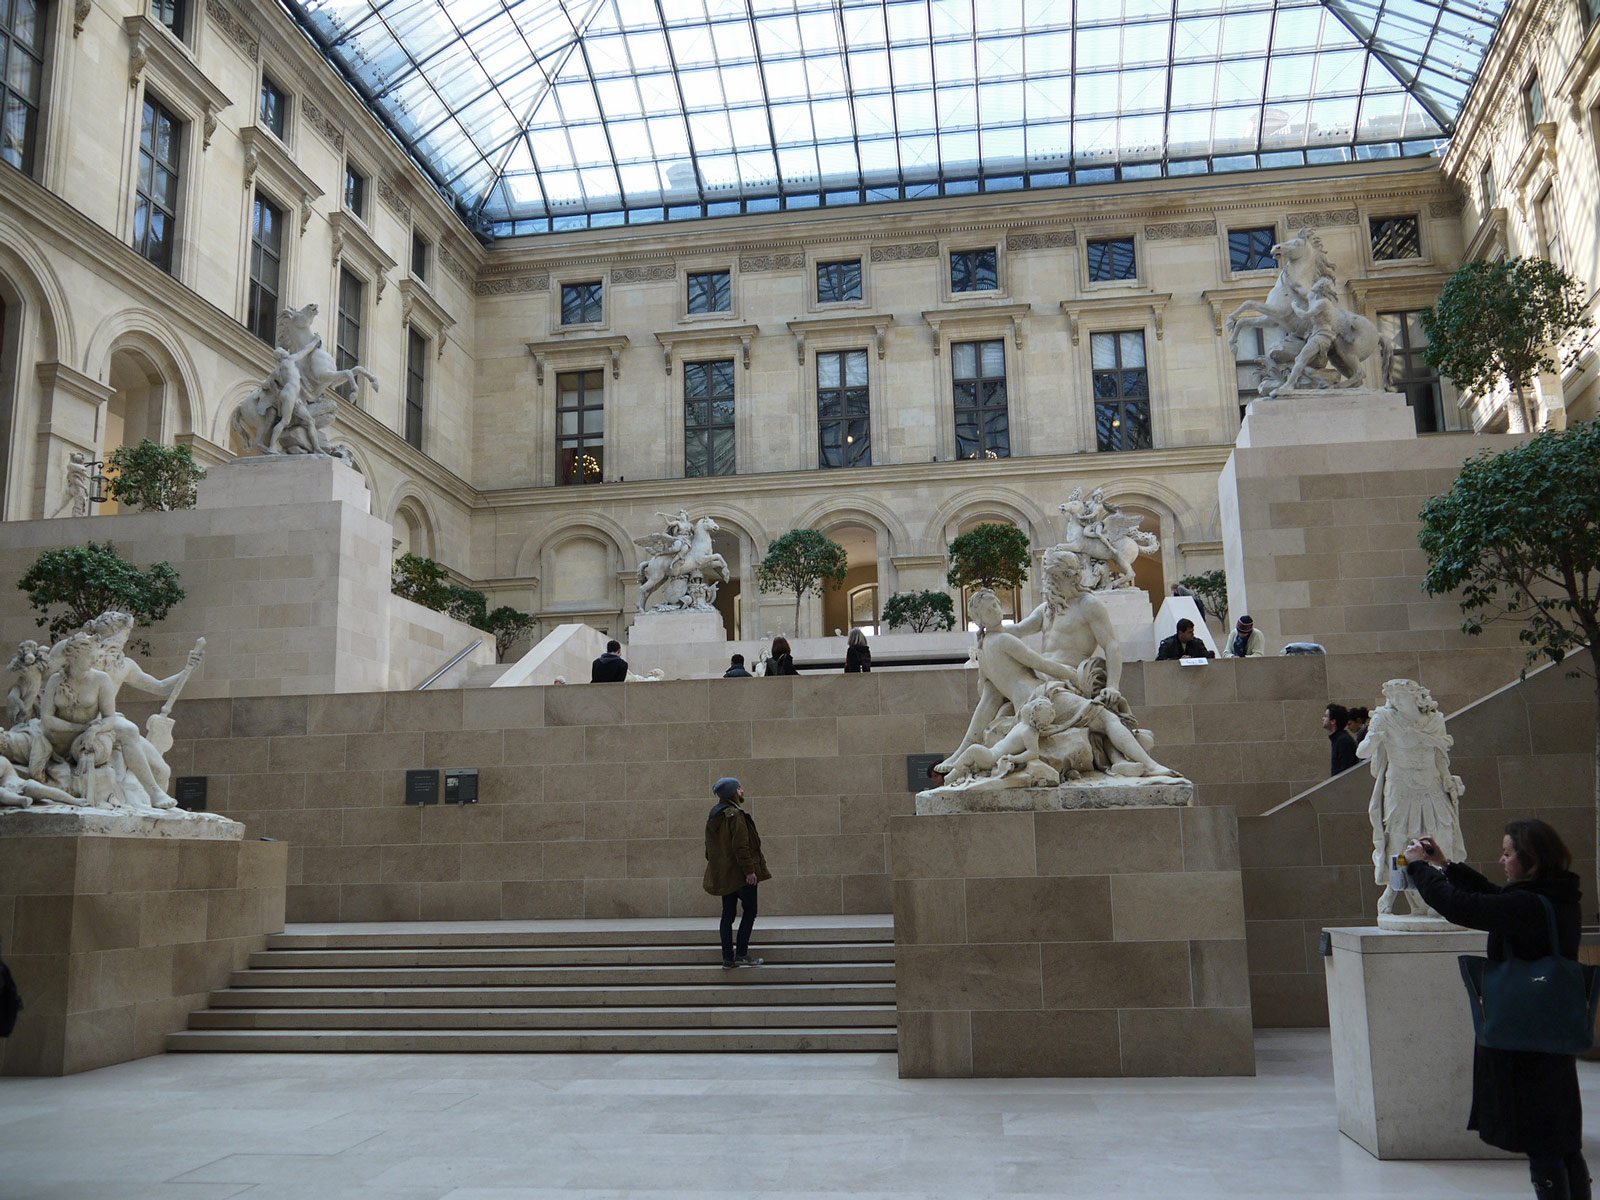 Louvre: Wandering Amongst the Sculptures - Paris, France